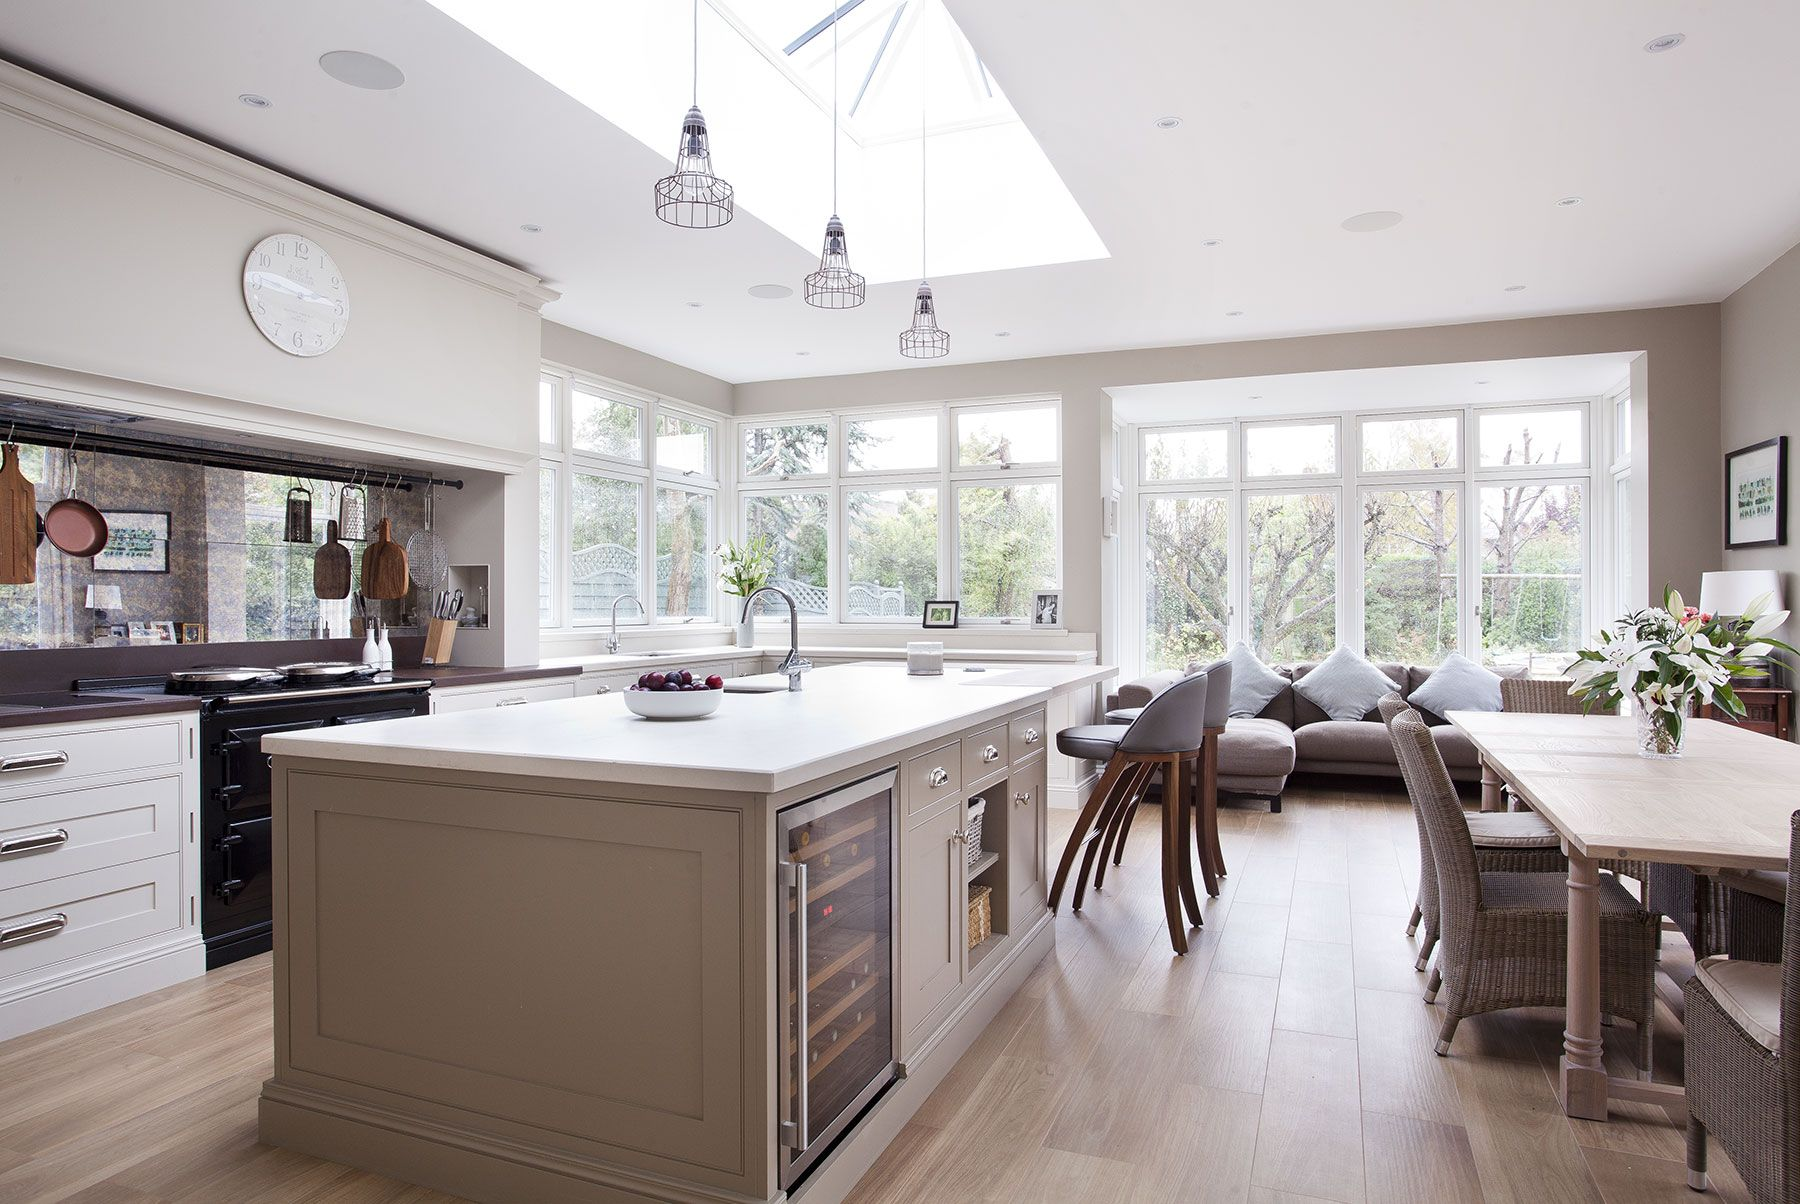 Kitchen Design Ideas Ireland kitchen designs ireland | luxury kitchens | woodale designs